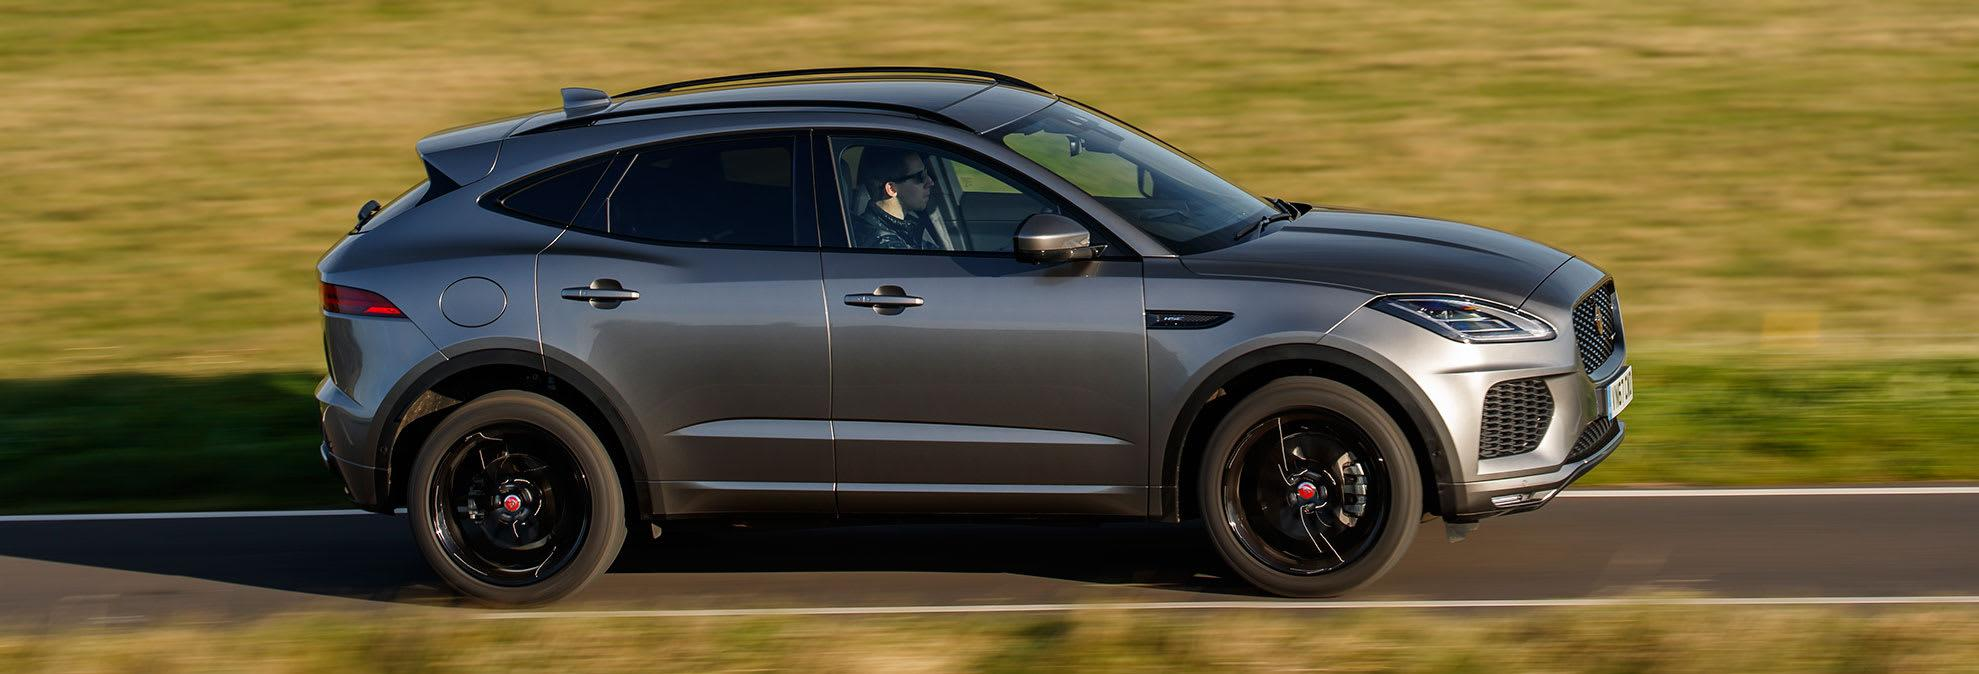 2018 Jaguar E Pace Joins The Compact Luxury Suv Party